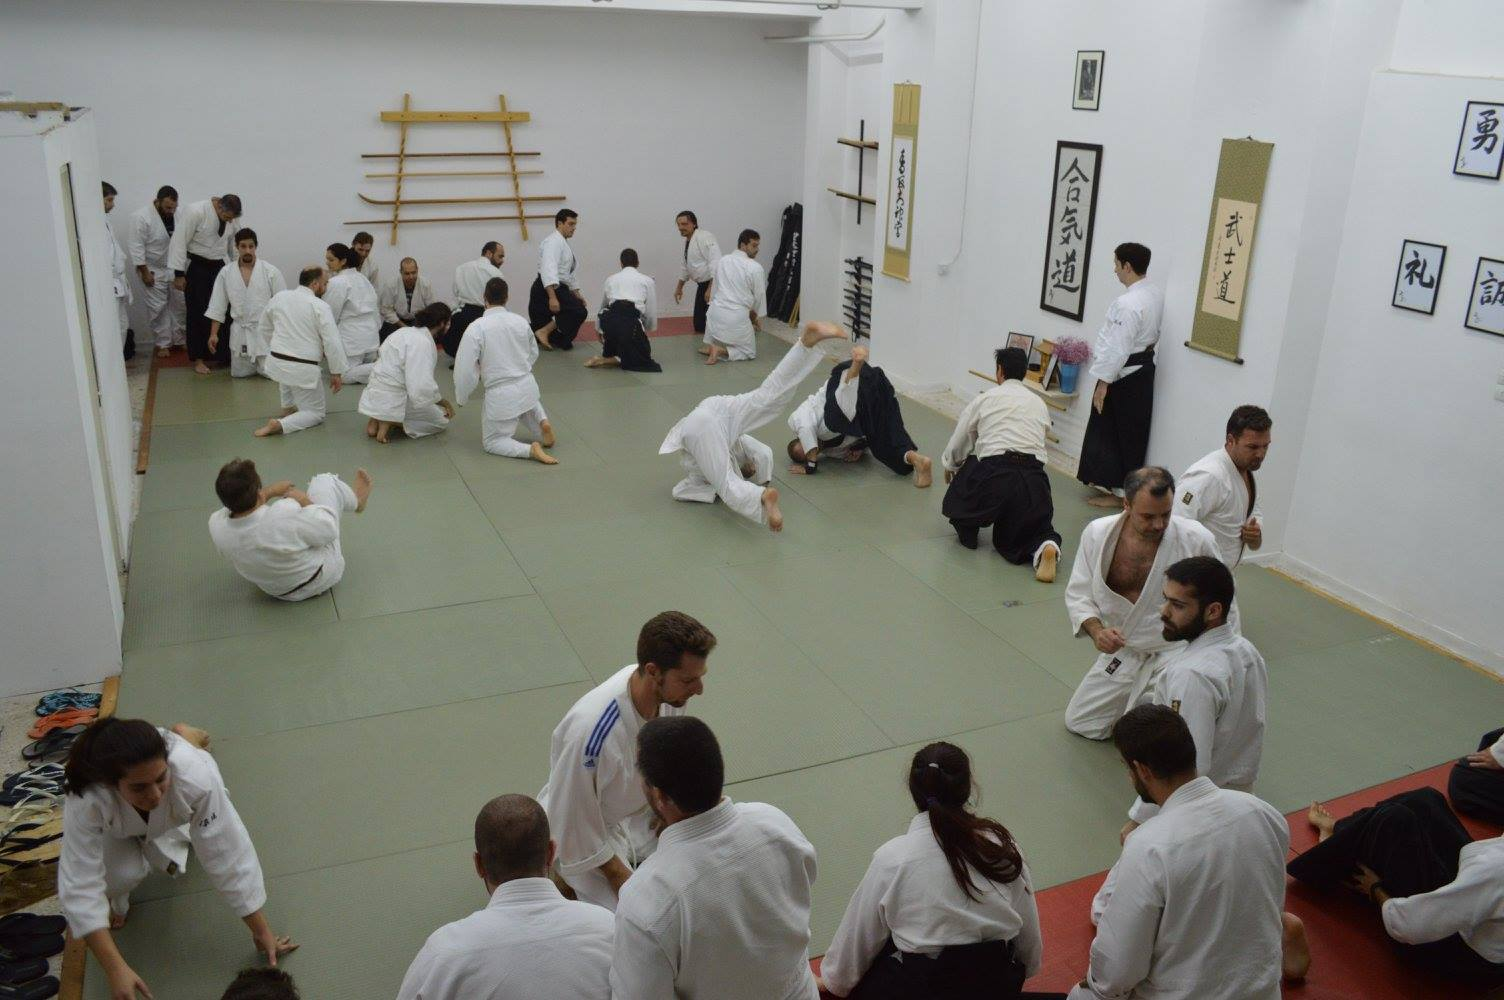 abc common aikido practice20